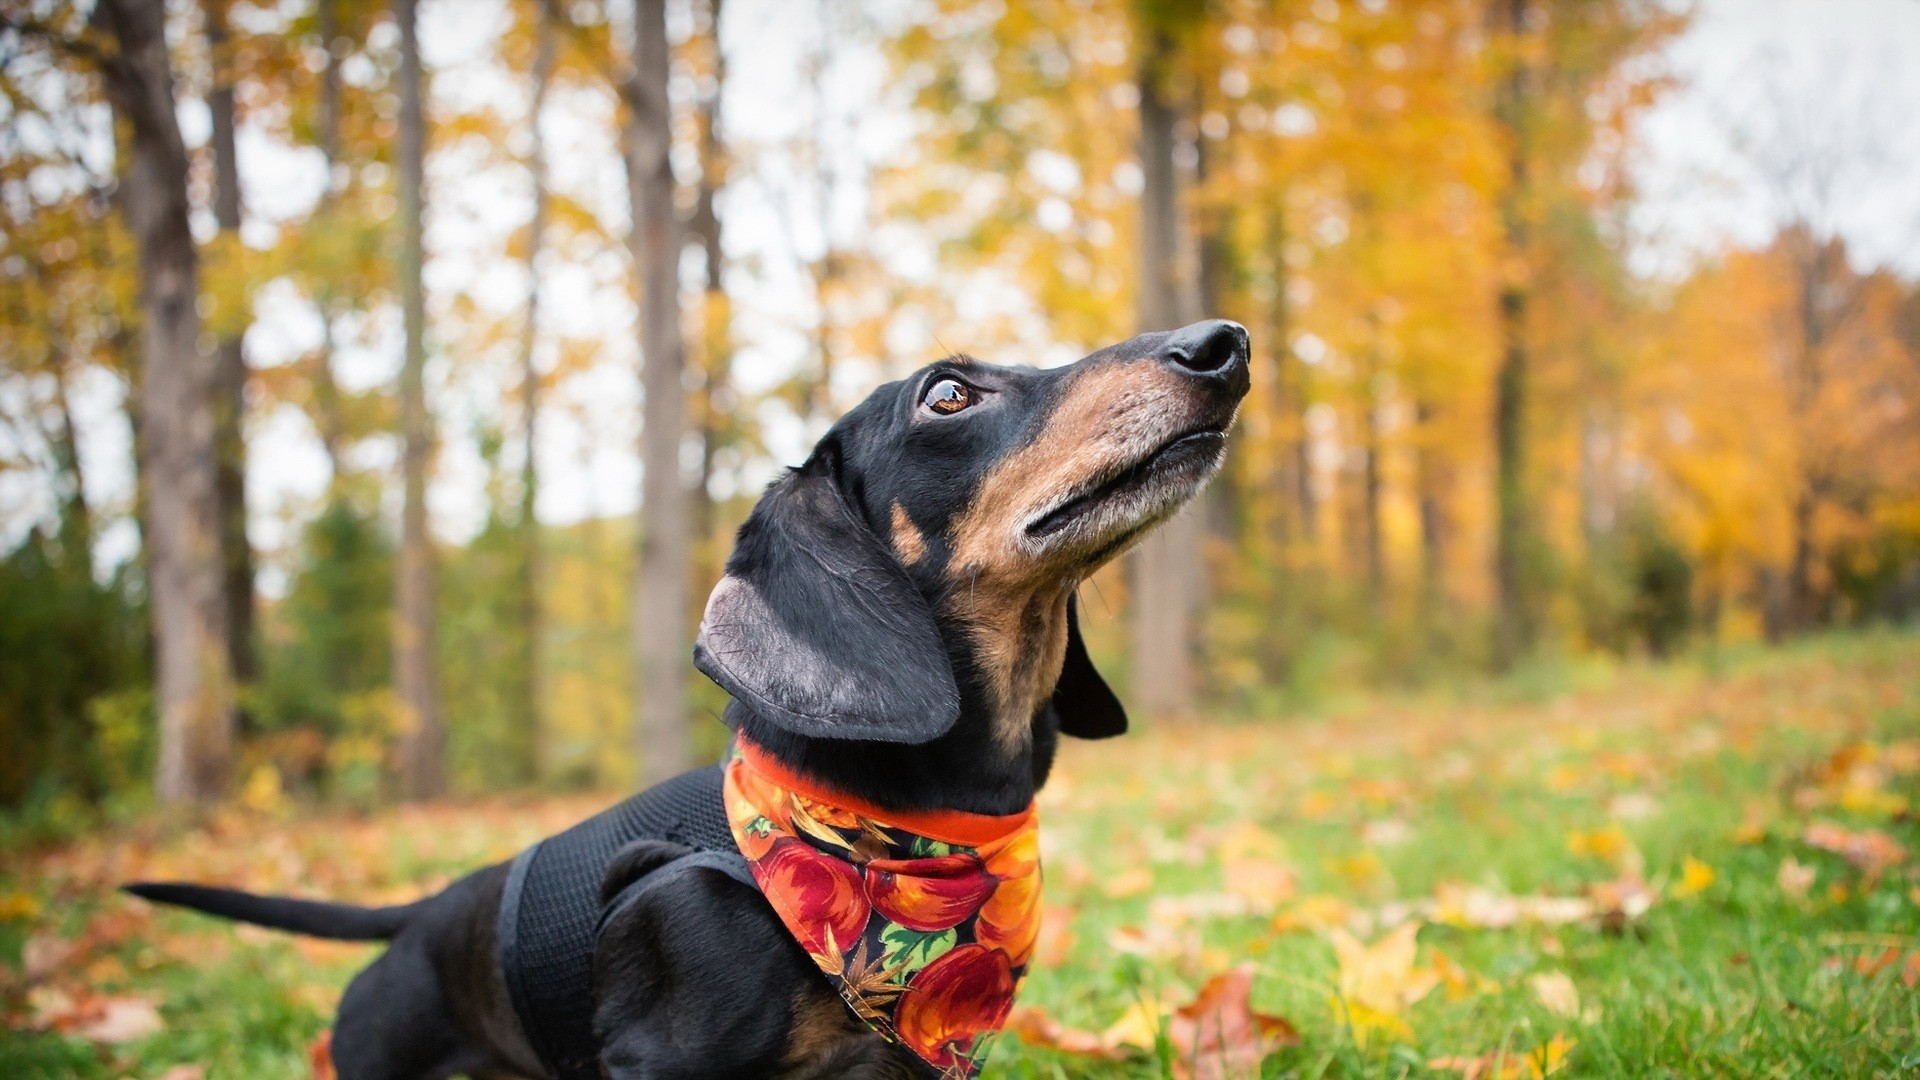 1920x1080  Wallpaper dachshund, dog, shawl, grass, leaves, autumn